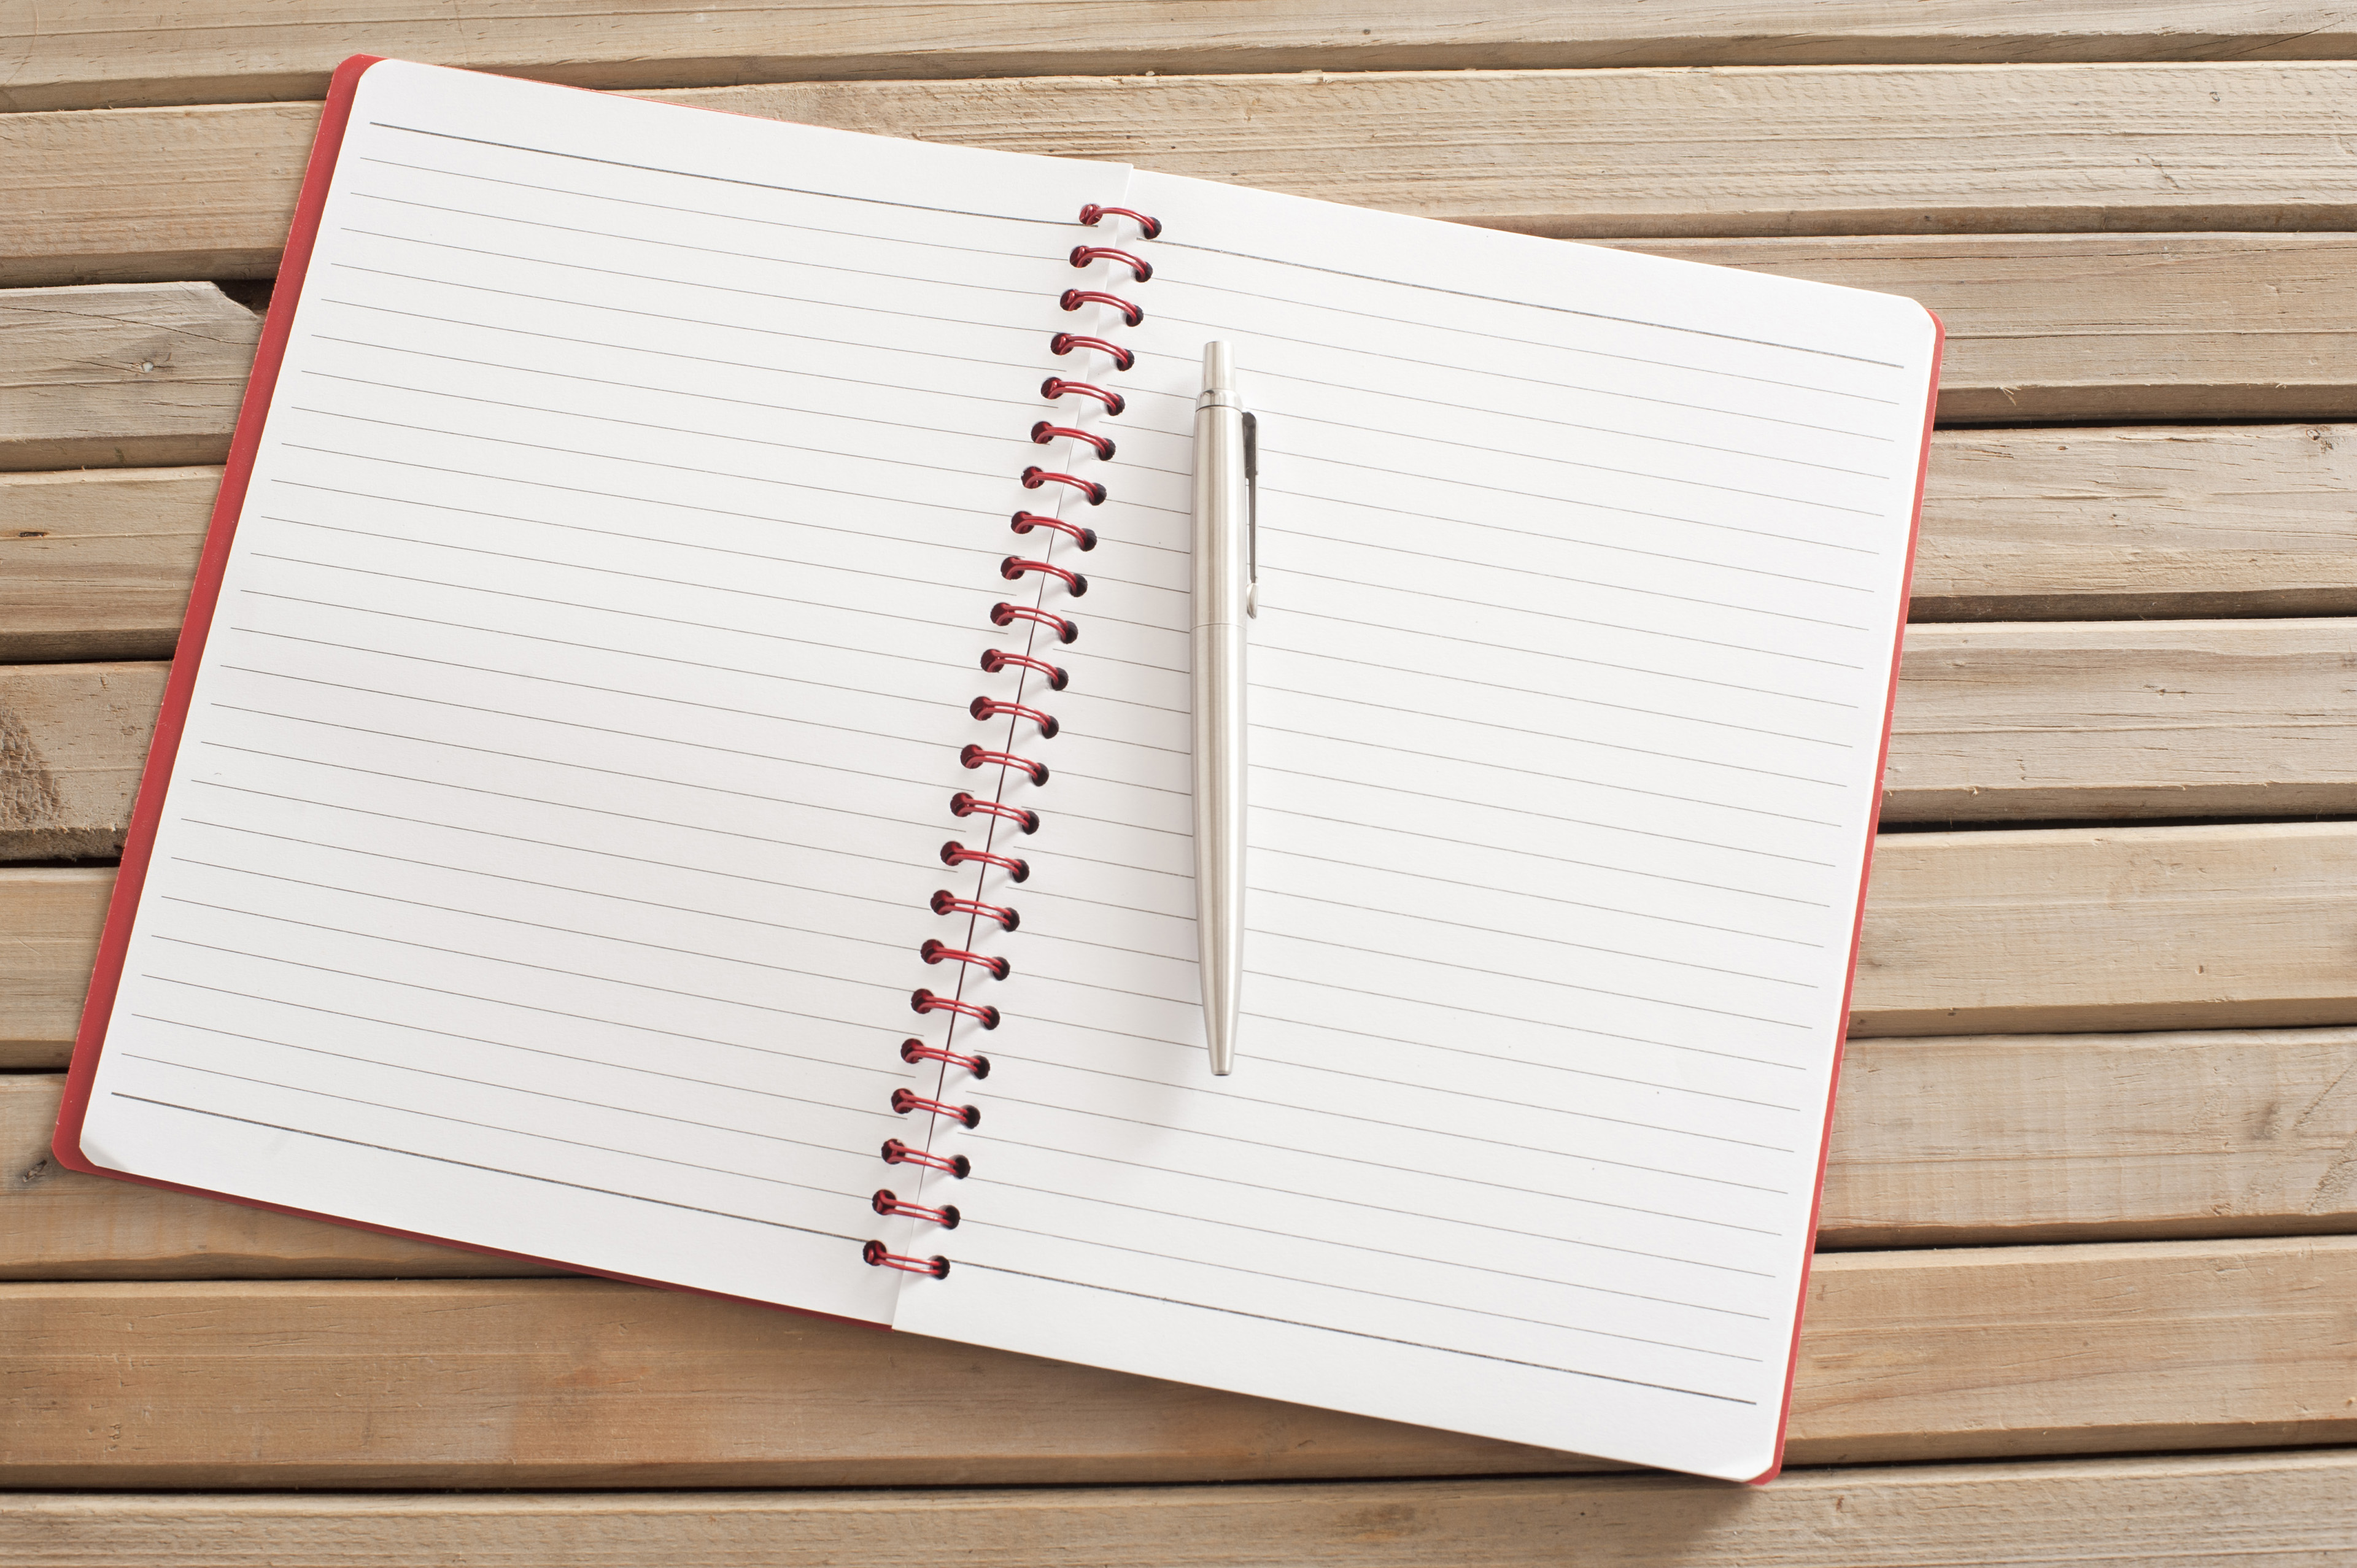 Open Blank Notebook with Pen on Wooden Table